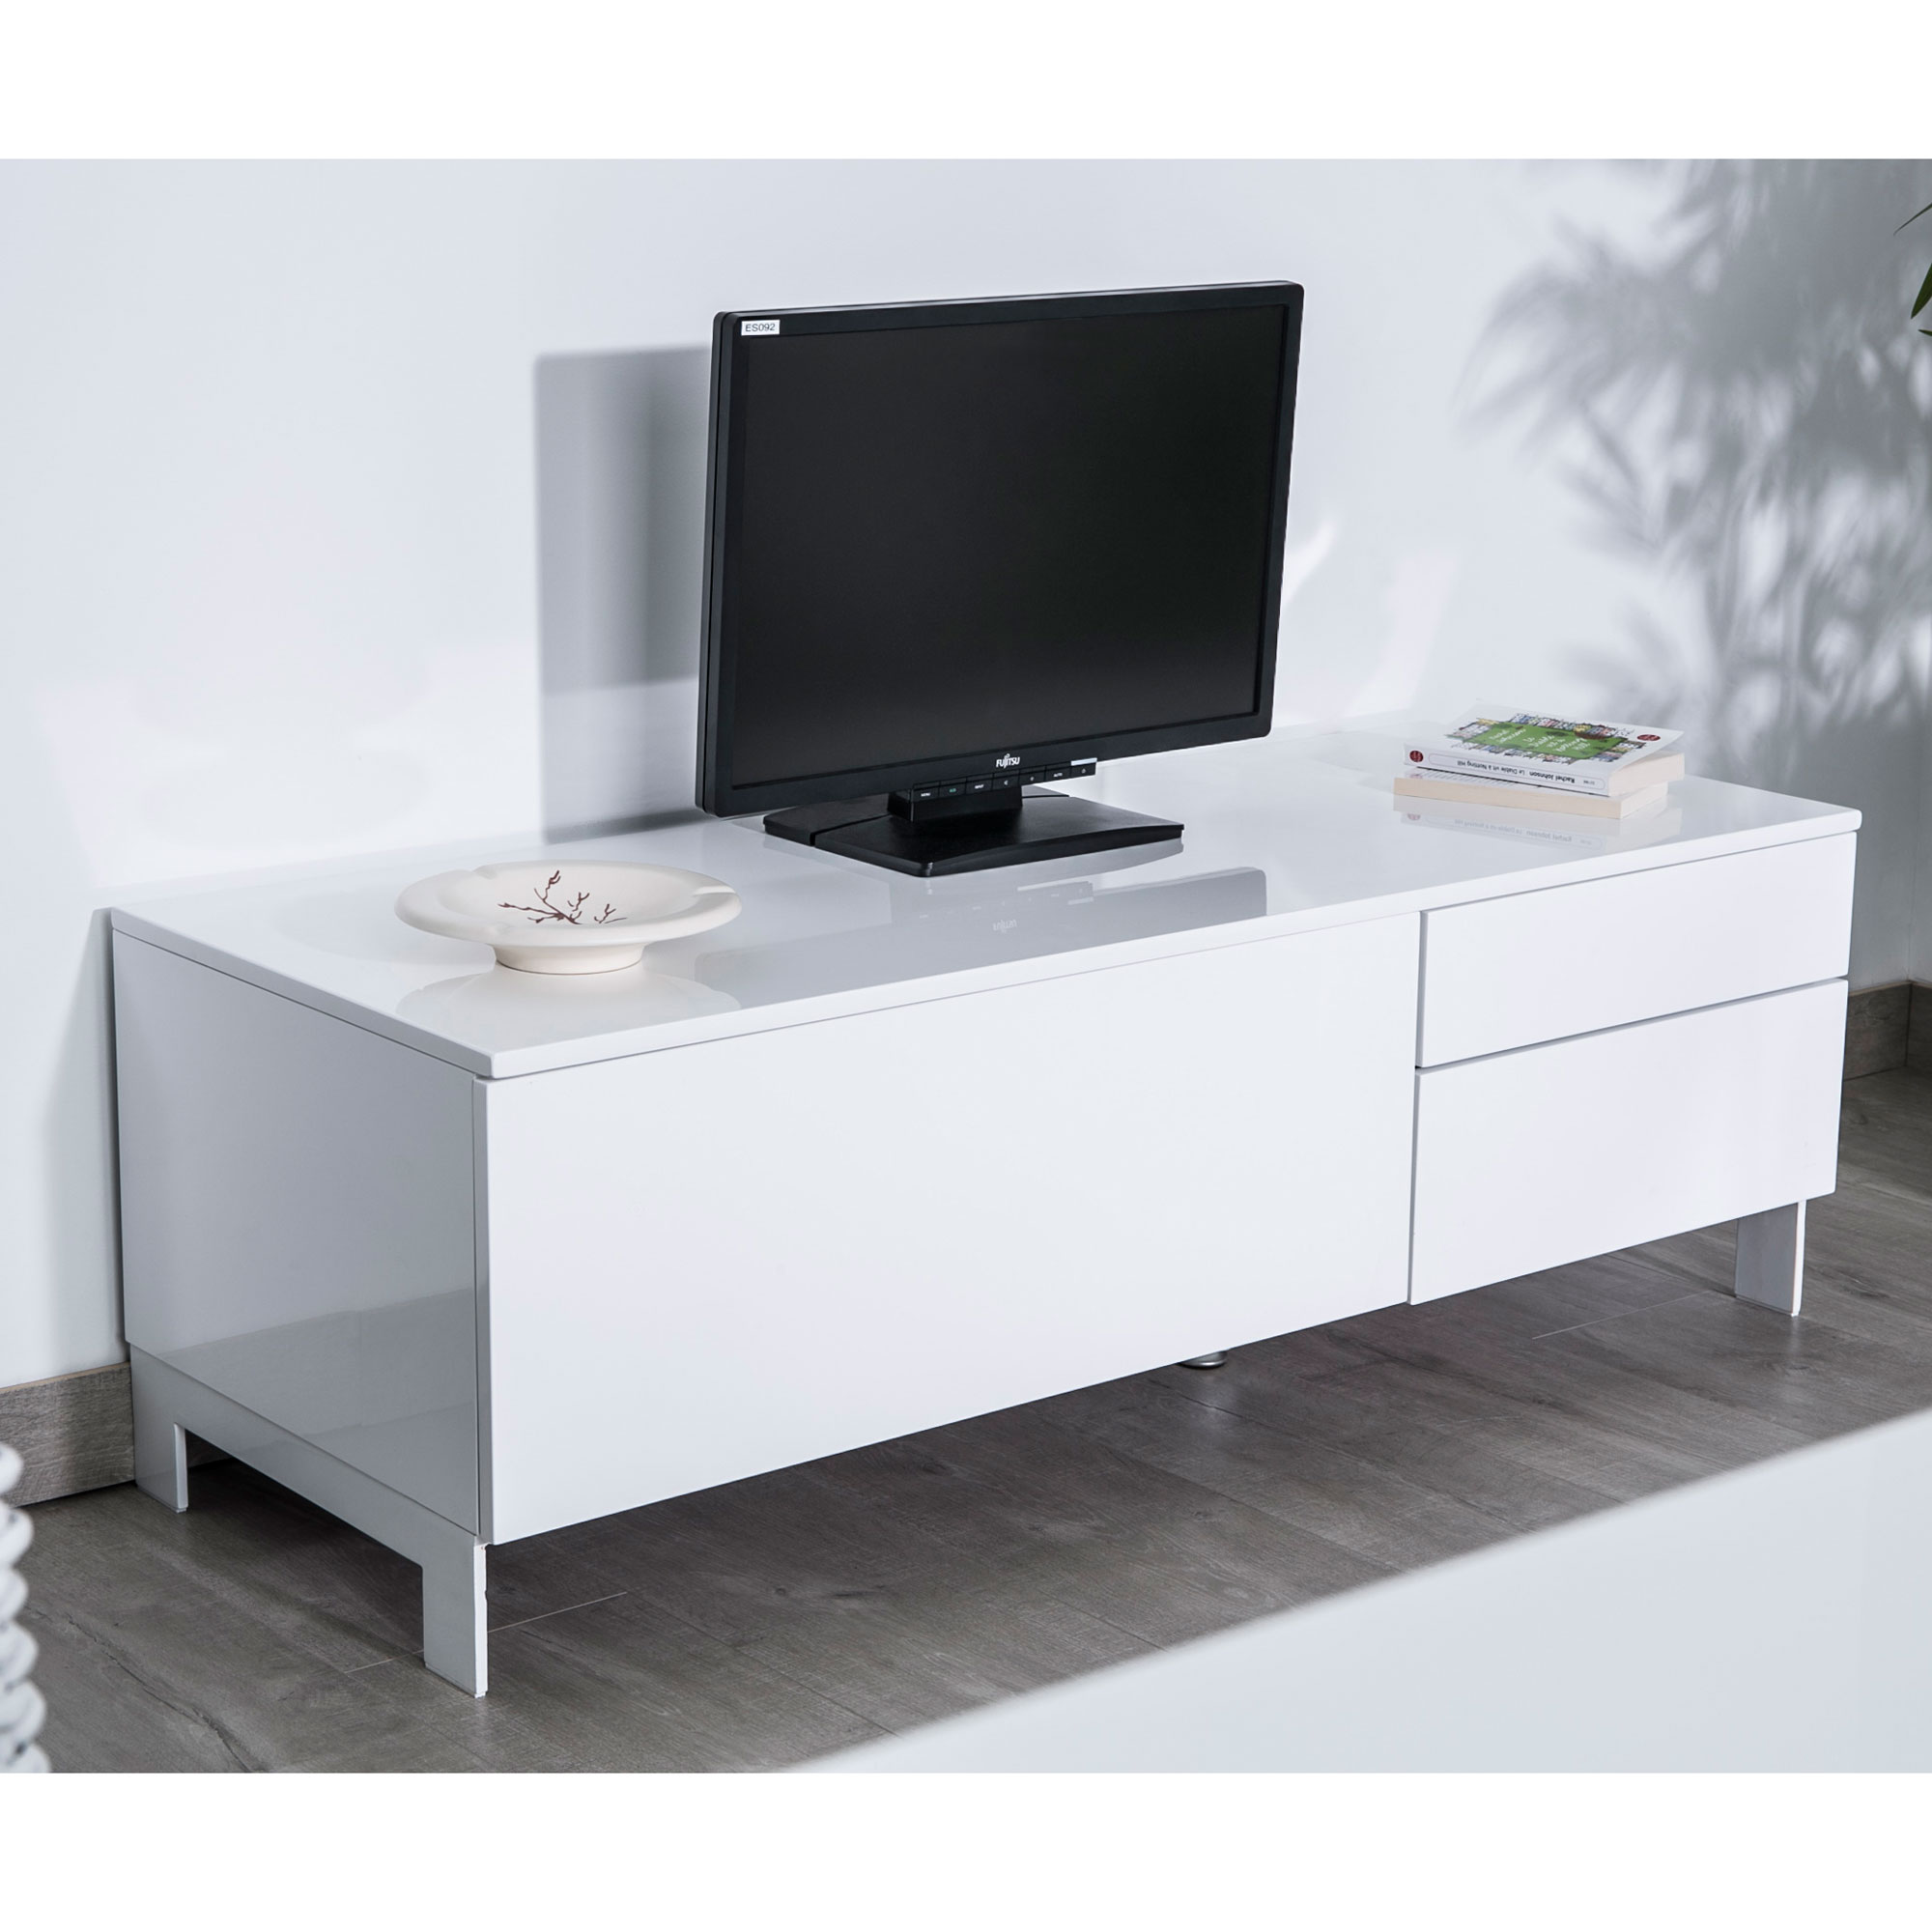 Meuble tv 90 cm 1 id es de d coration int rieure french decor - Meuble tv 90 cm ...